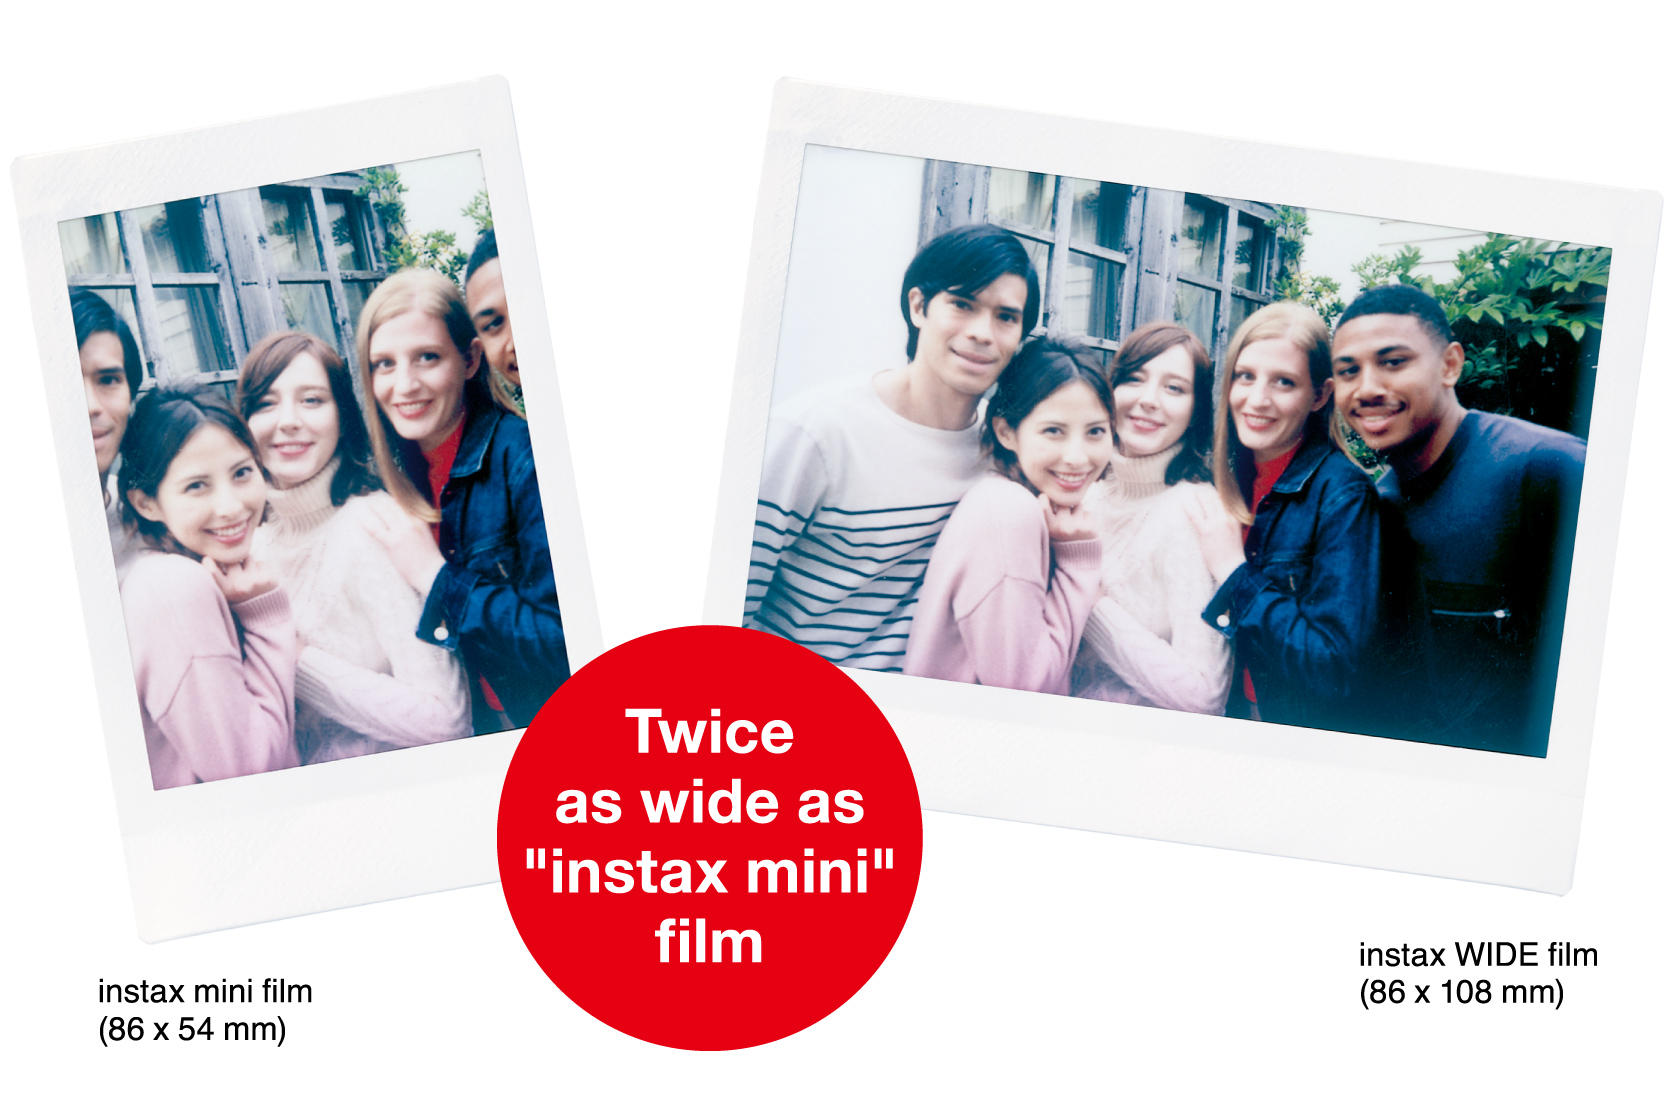 """[photo] Comparison photos of Instax Wide 300 photo prints and Instax Mini photo prints with """"twice as wide as instax mini"""" text"""